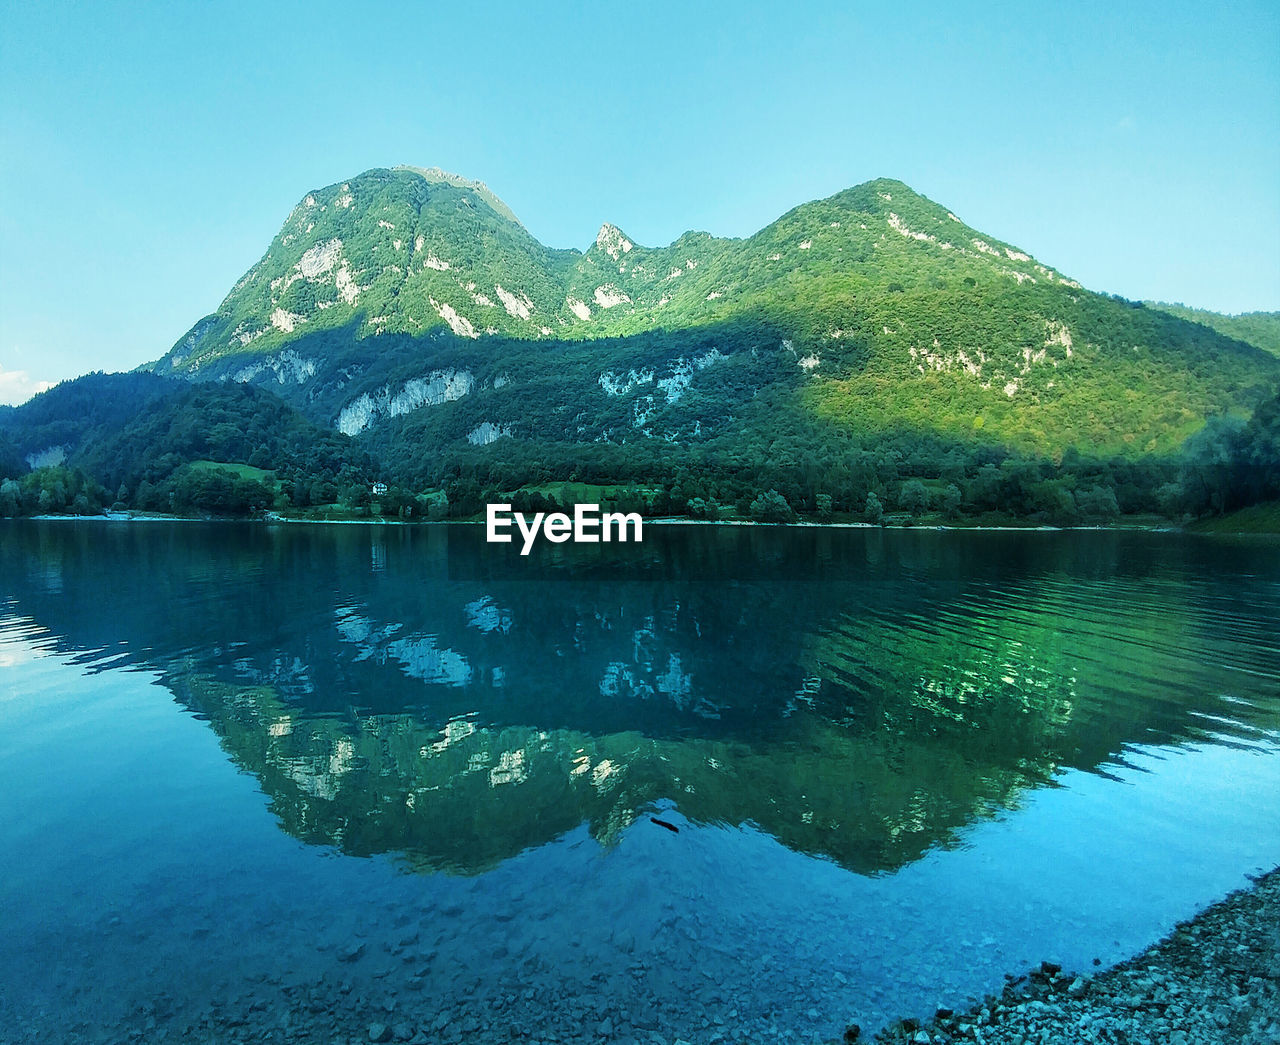 mountain, reflection, lake, water, mountain range, tranquil scene, scenics, tranquility, nature, beauty in nature, idyllic, waterfront, outdoors, no people, day, clear sky, sky, symmetry, travel destinations, tree